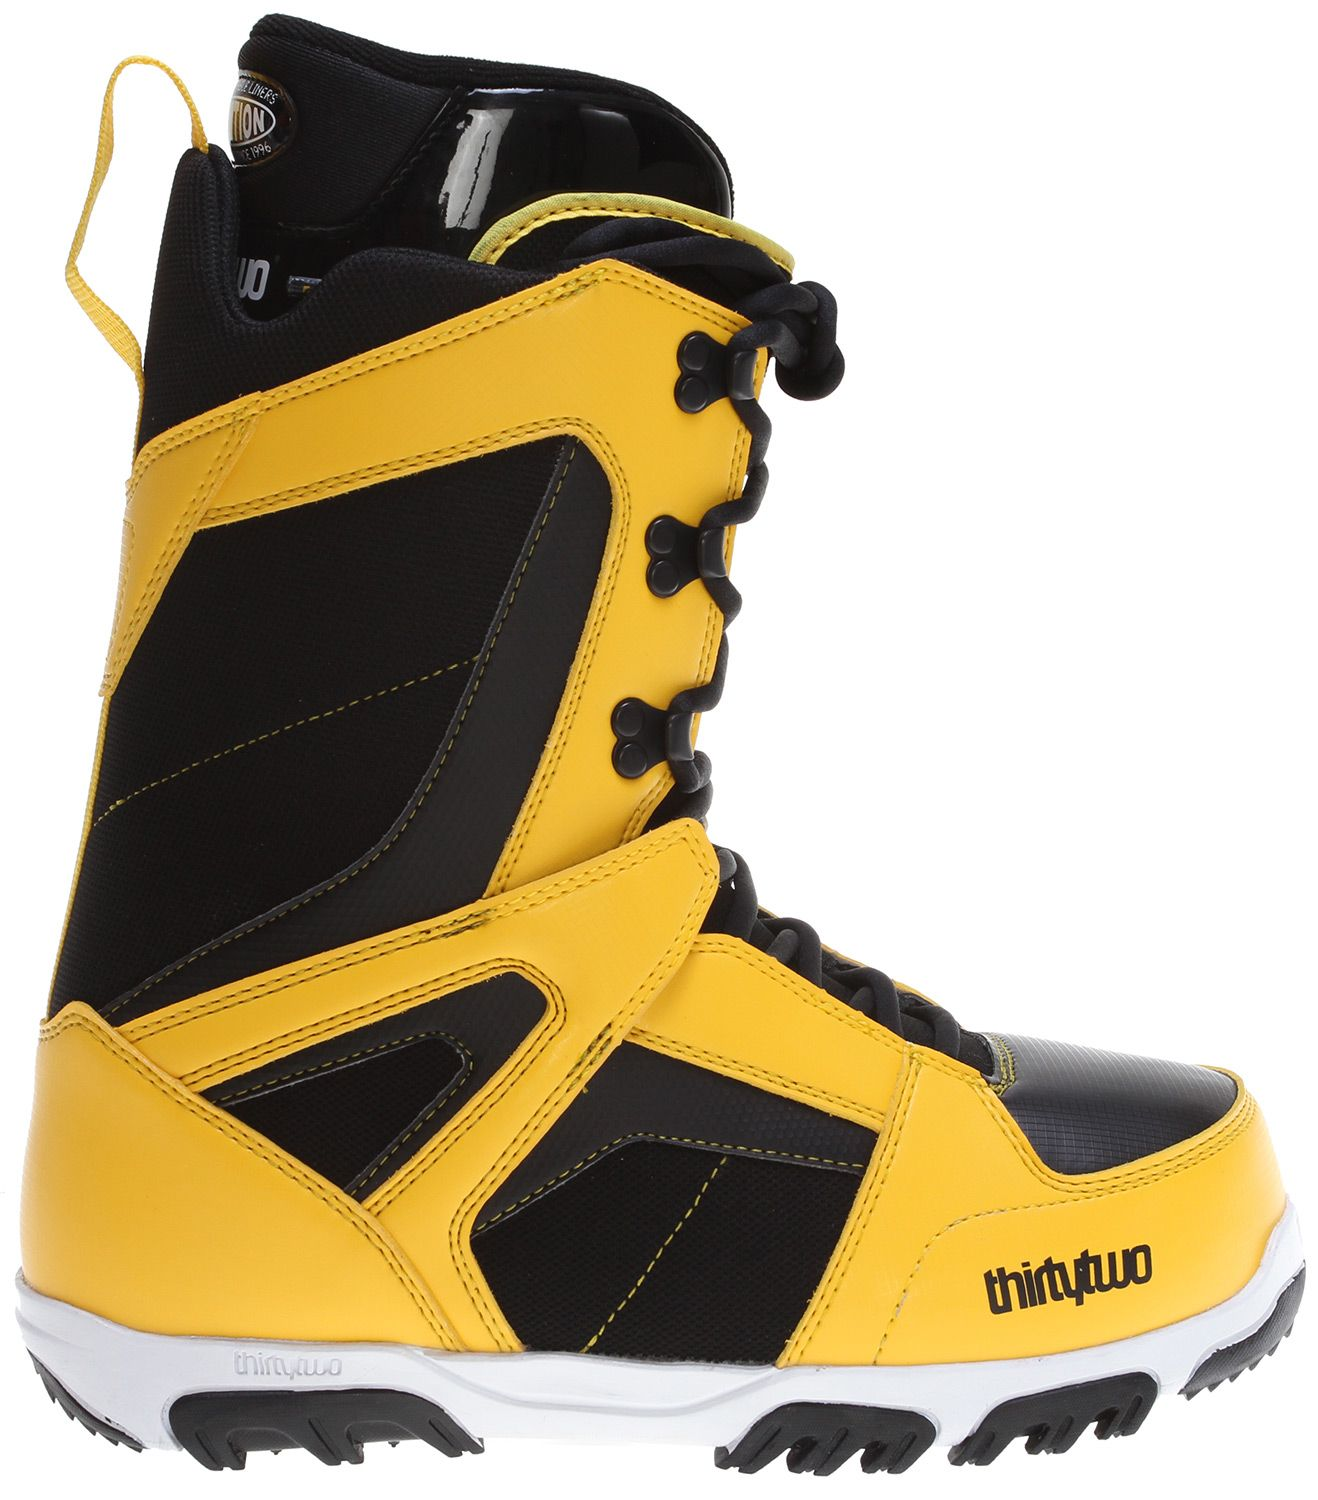 32 Thirty Two Prion Snowboard Boots Snowboard Boots Boots 2016 Boots